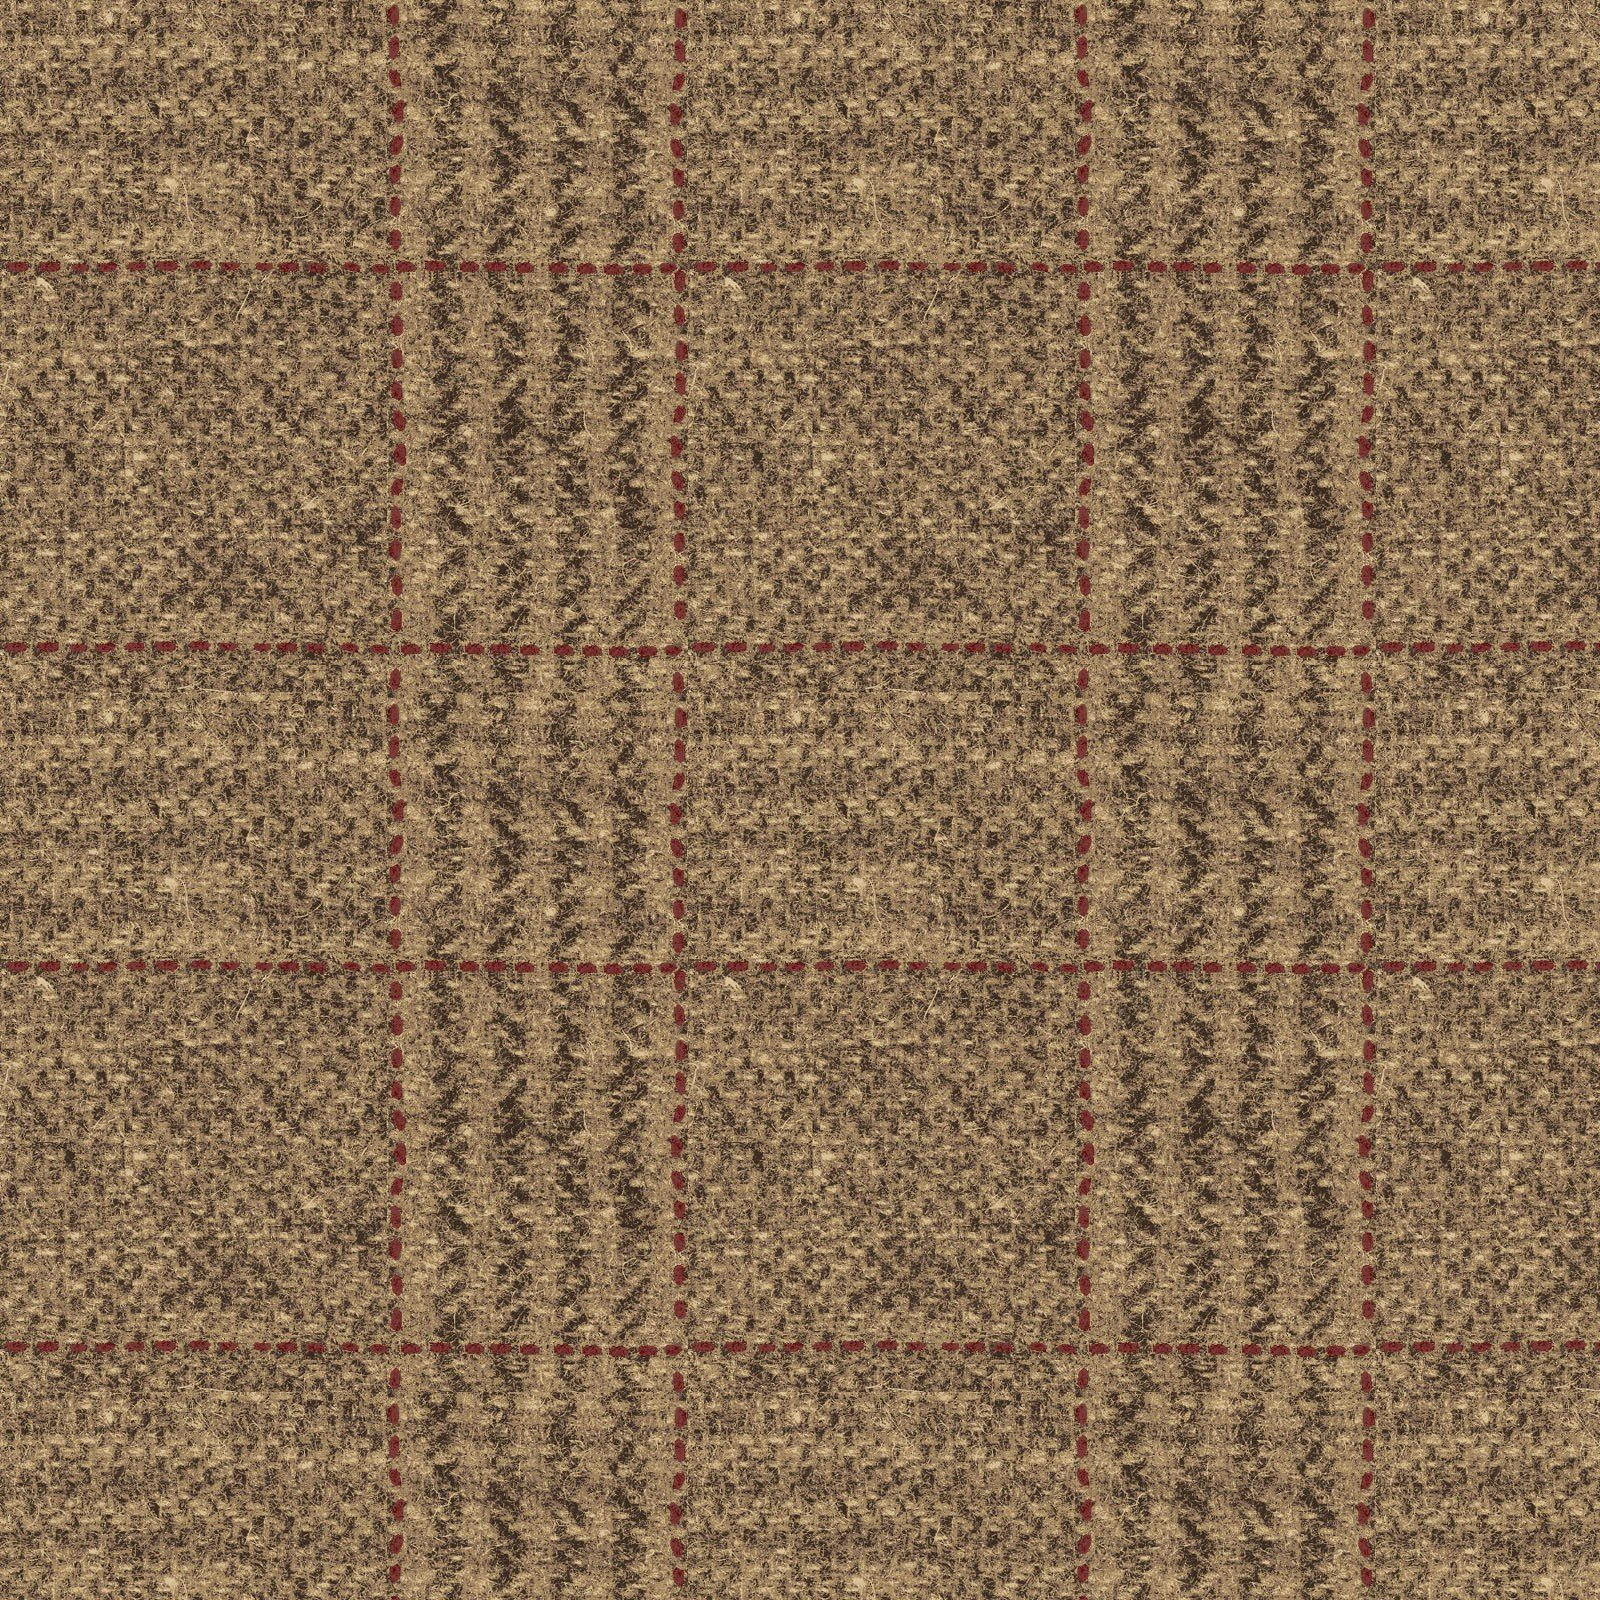 Plaid Taupe Spirit Of America Wool Chubby Sixteenths Lg Plaid Taupe